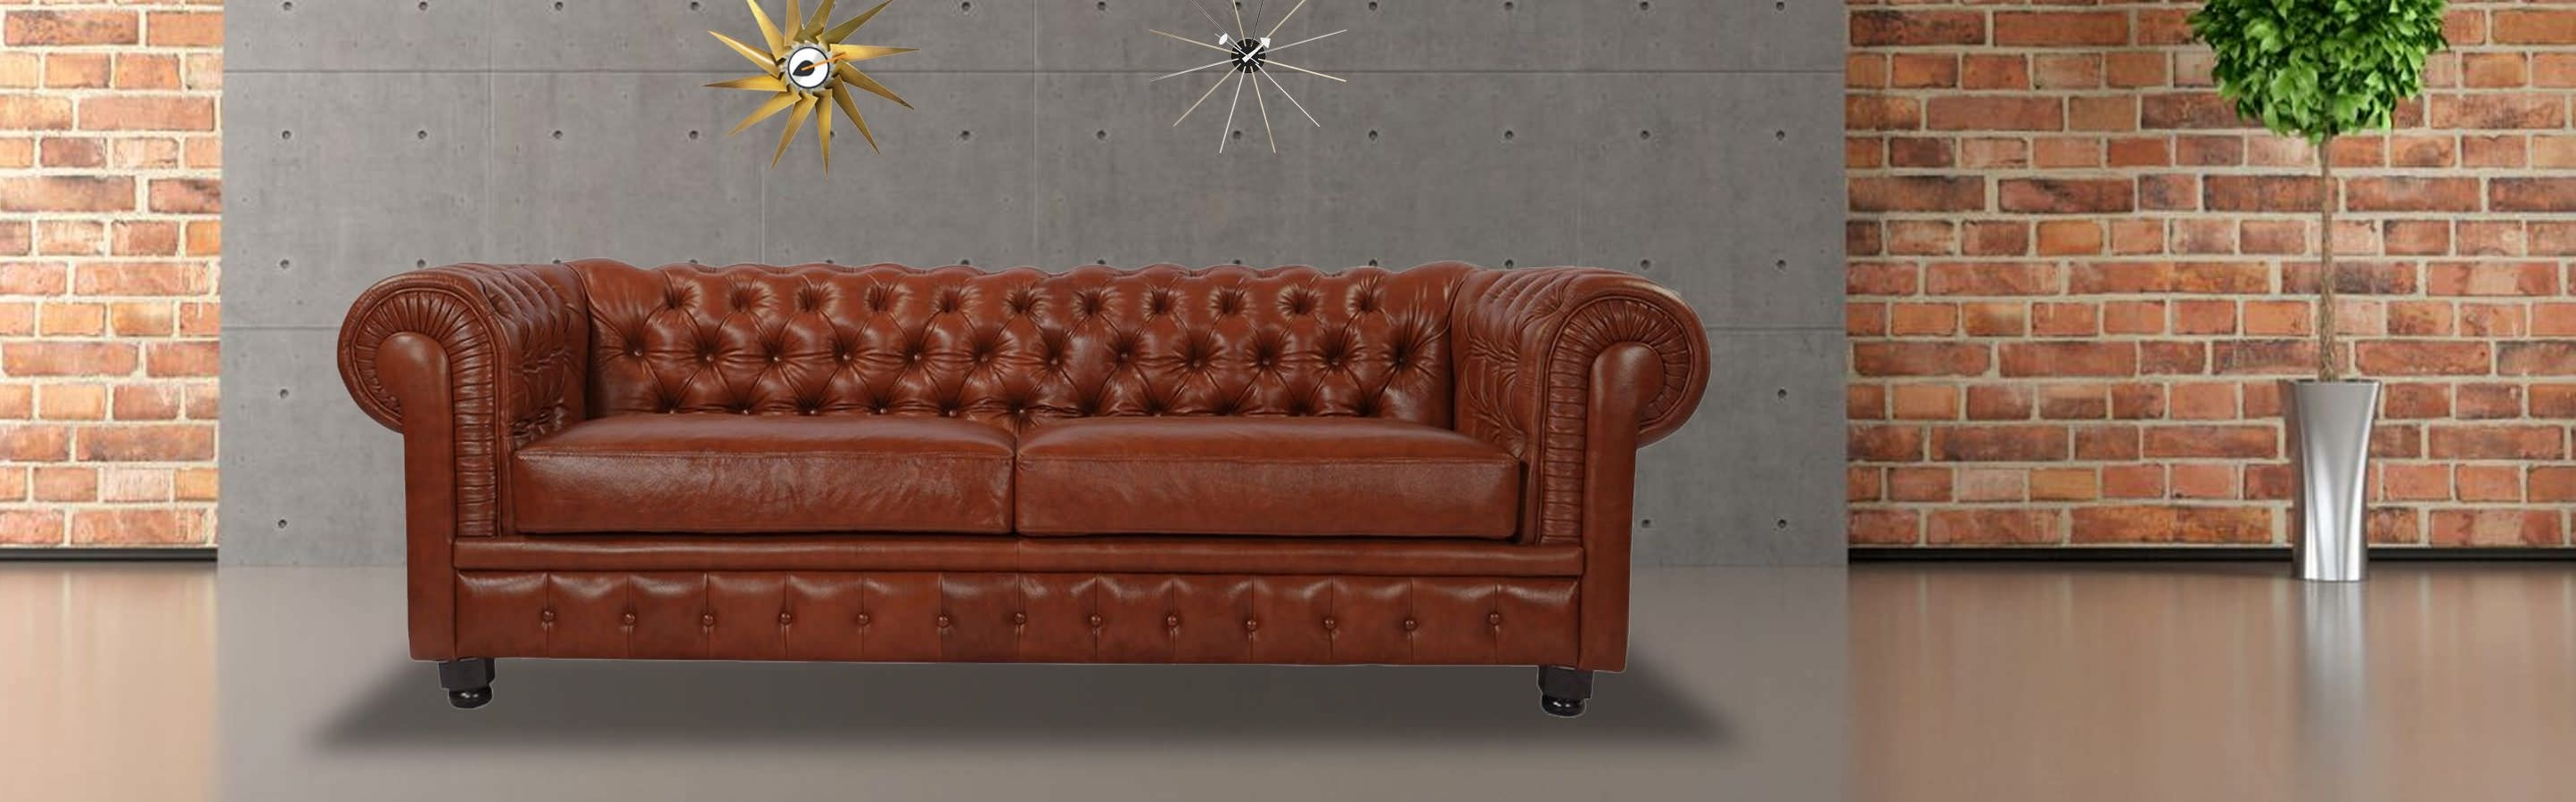 Famous Chesterfield Sofa, Chevron Grey Twill – Kardiel With Regard To Chesterfield Sofas And Chairs (View 14 of 20)